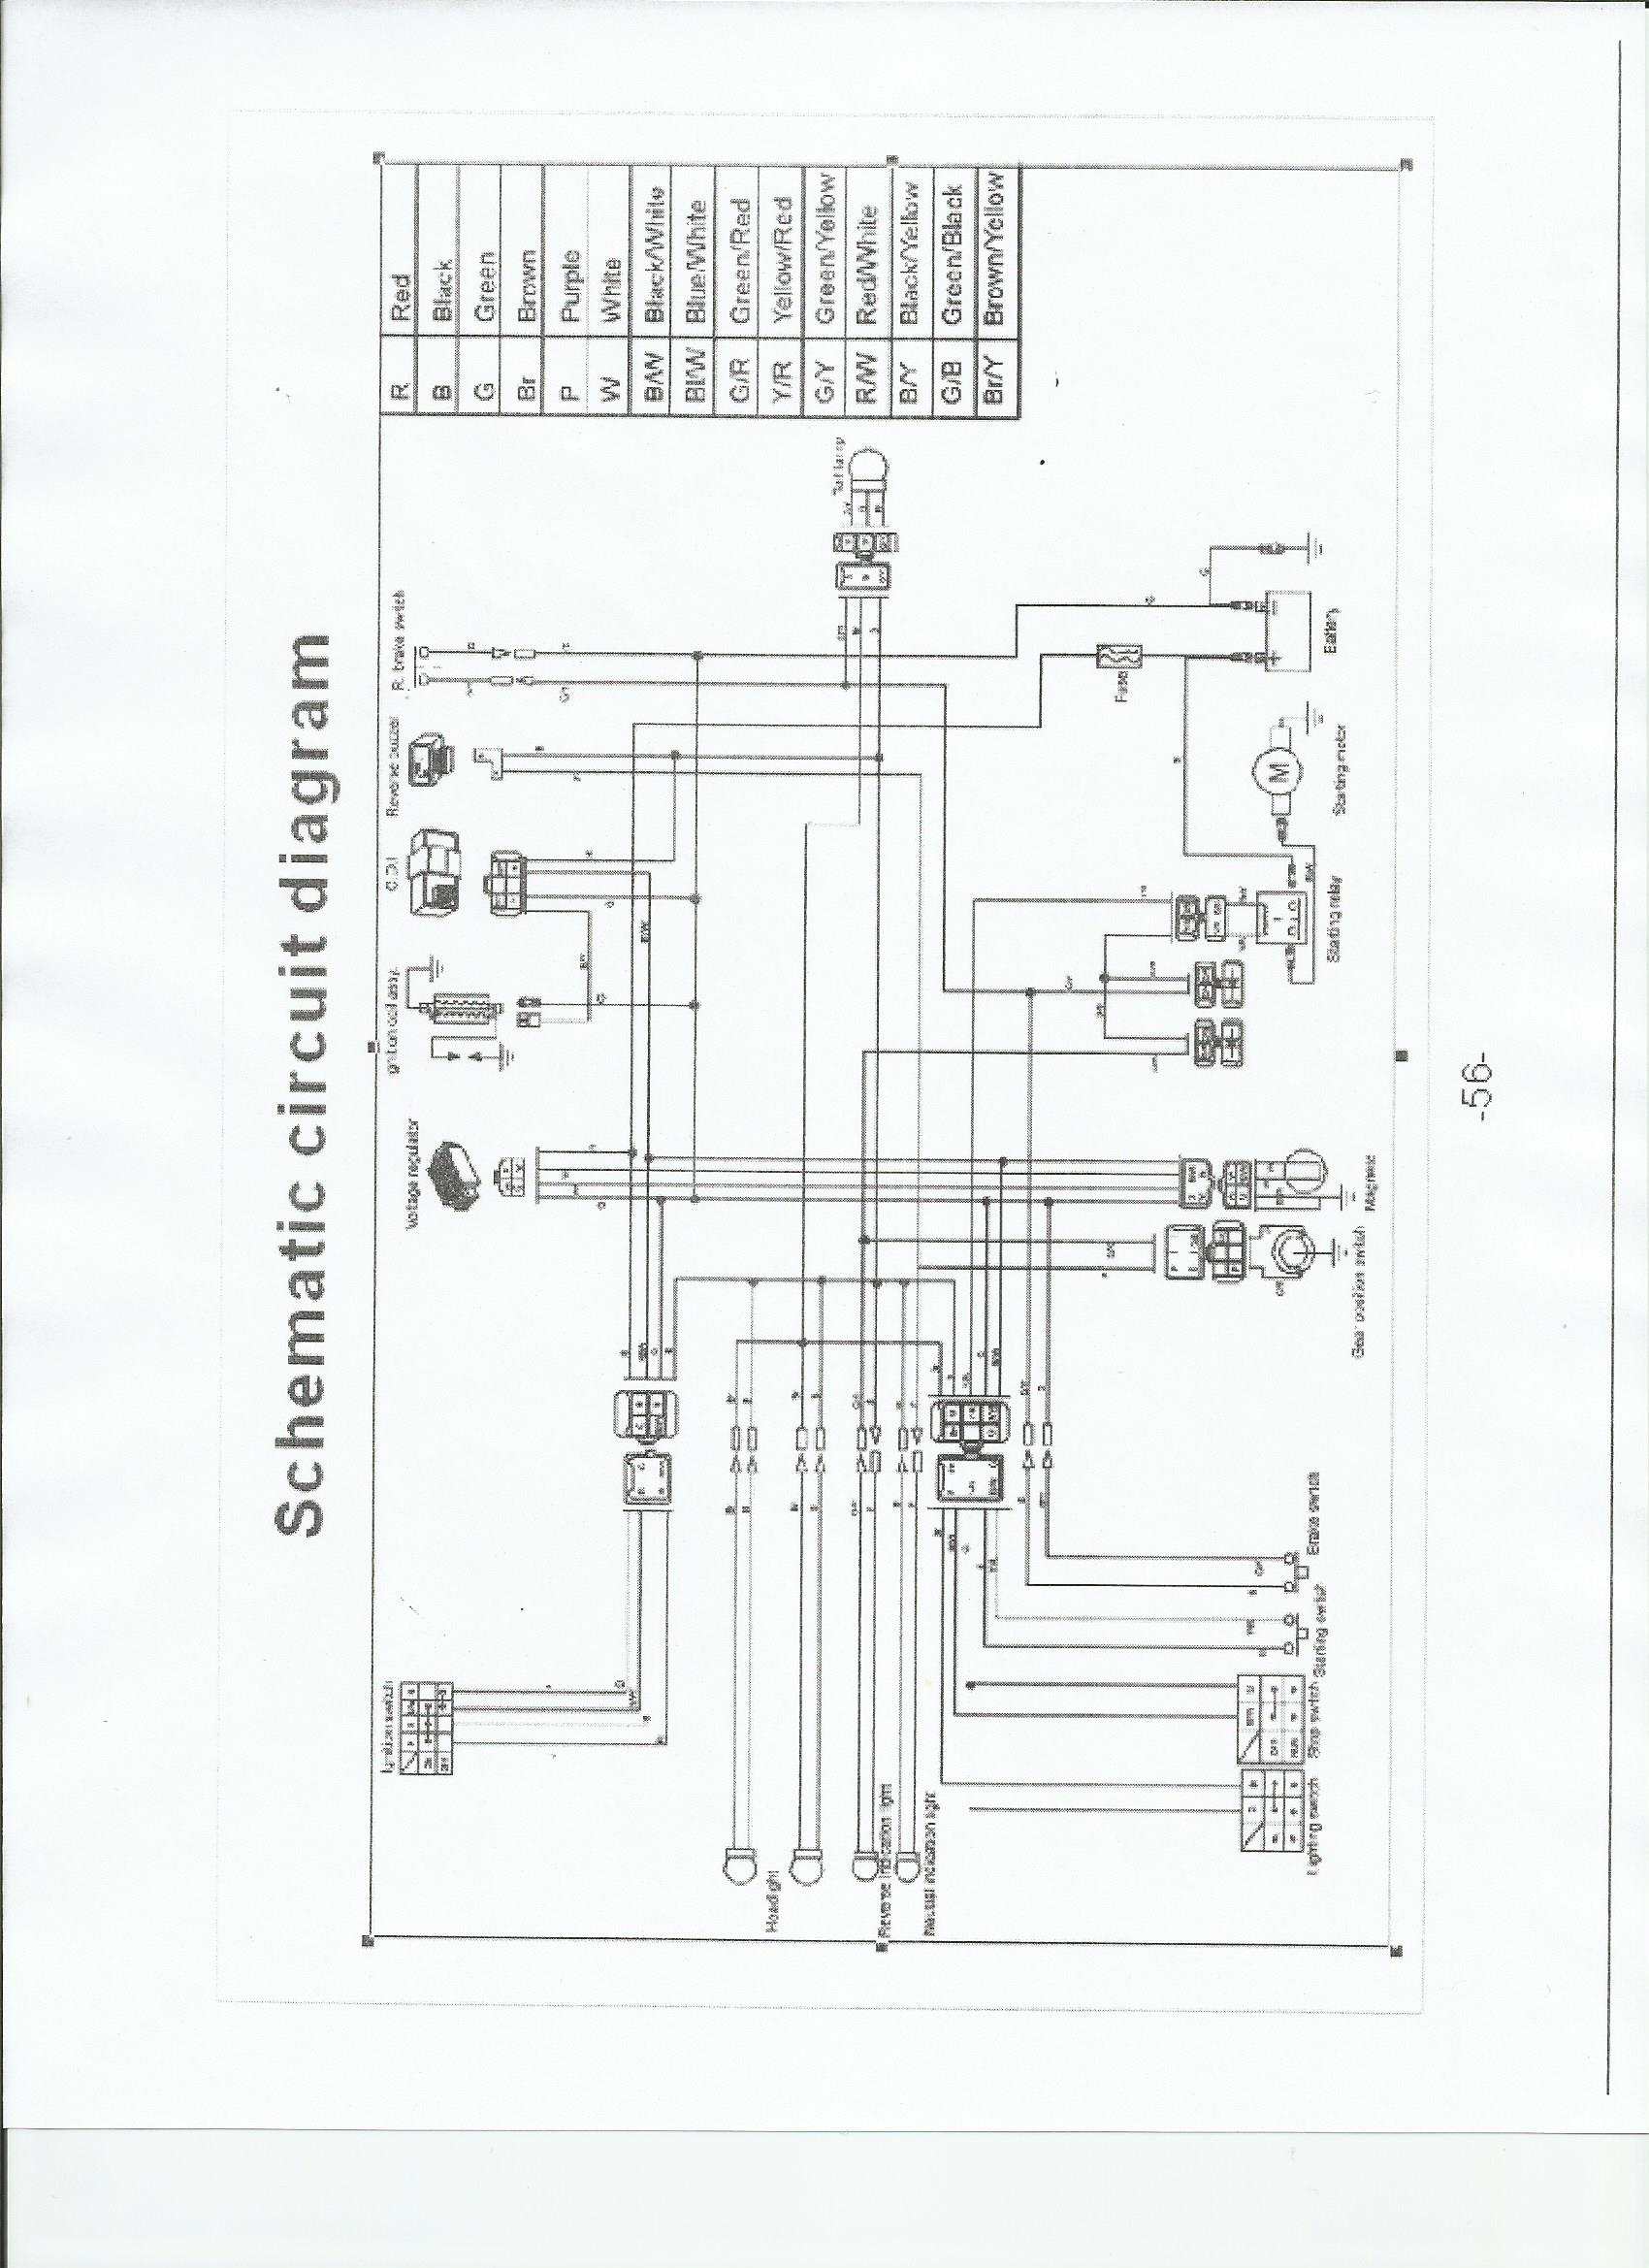 banshee wiring diagram help mk4 monsoon 2003 suzuki ltz 400 z400 schematic 33 images yamaha diagrams